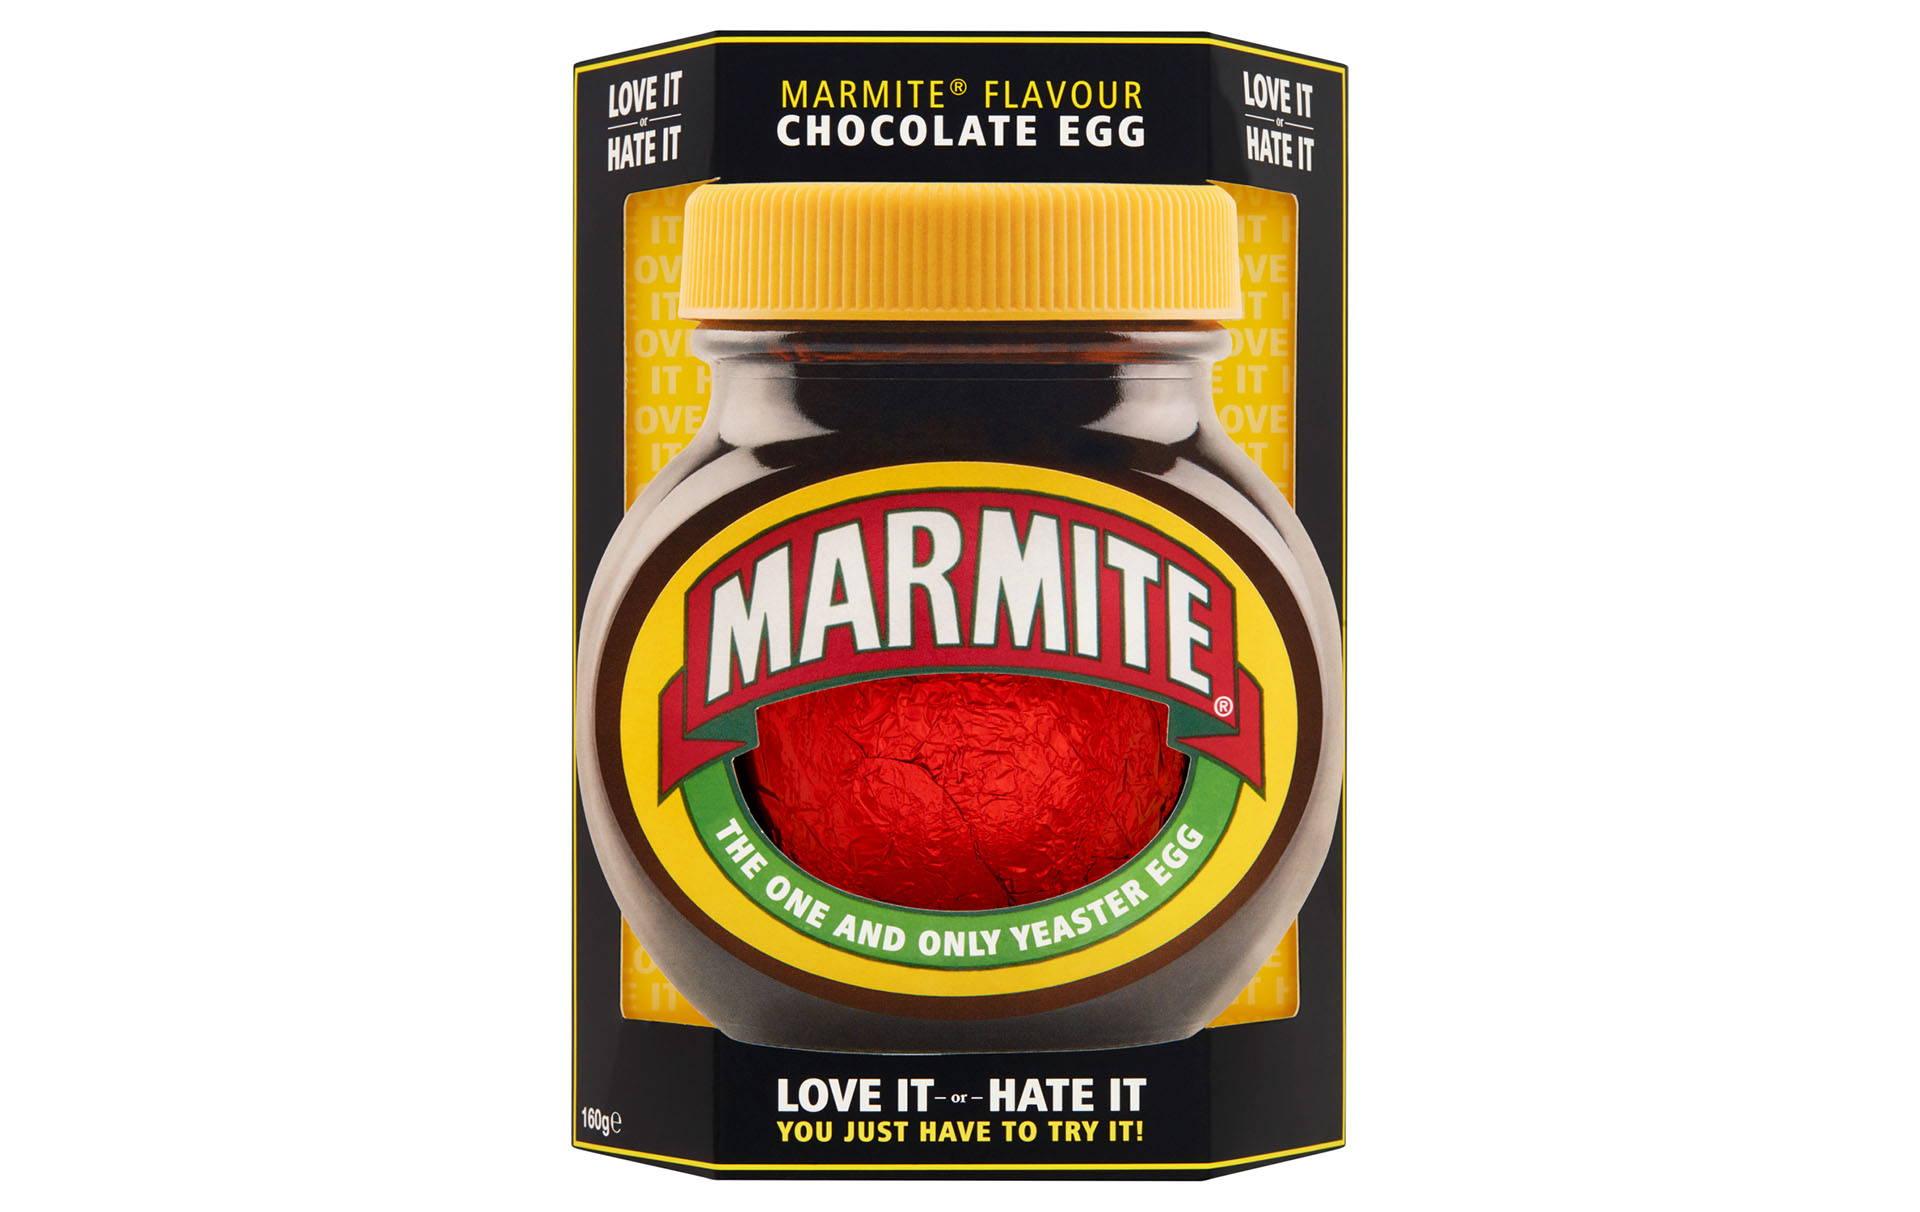 asda marmite easter egg